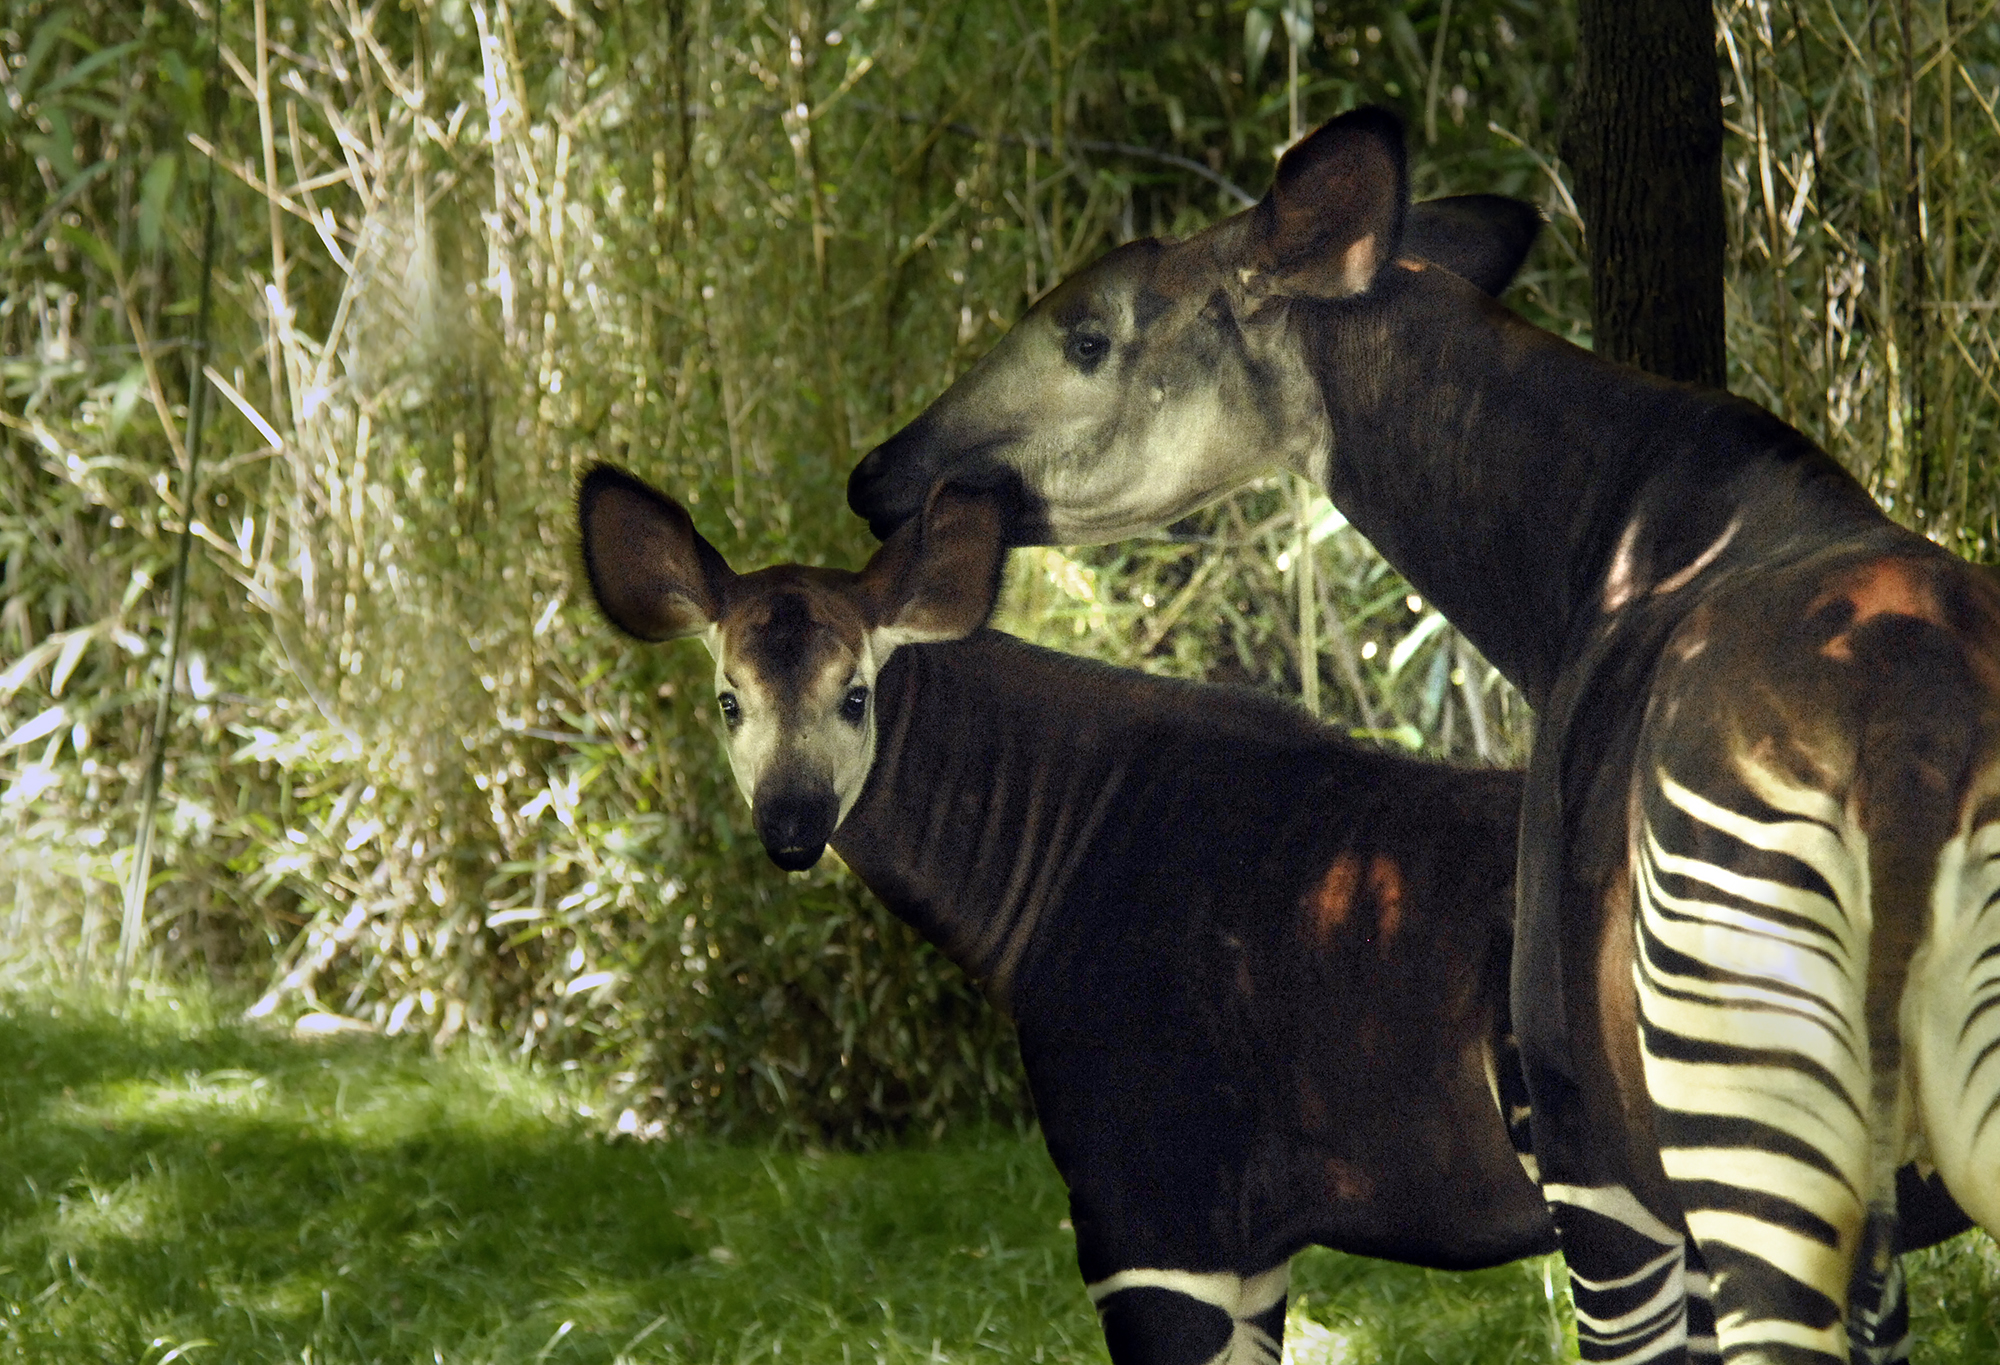 Okapi: Rare Rainforest Giraffe